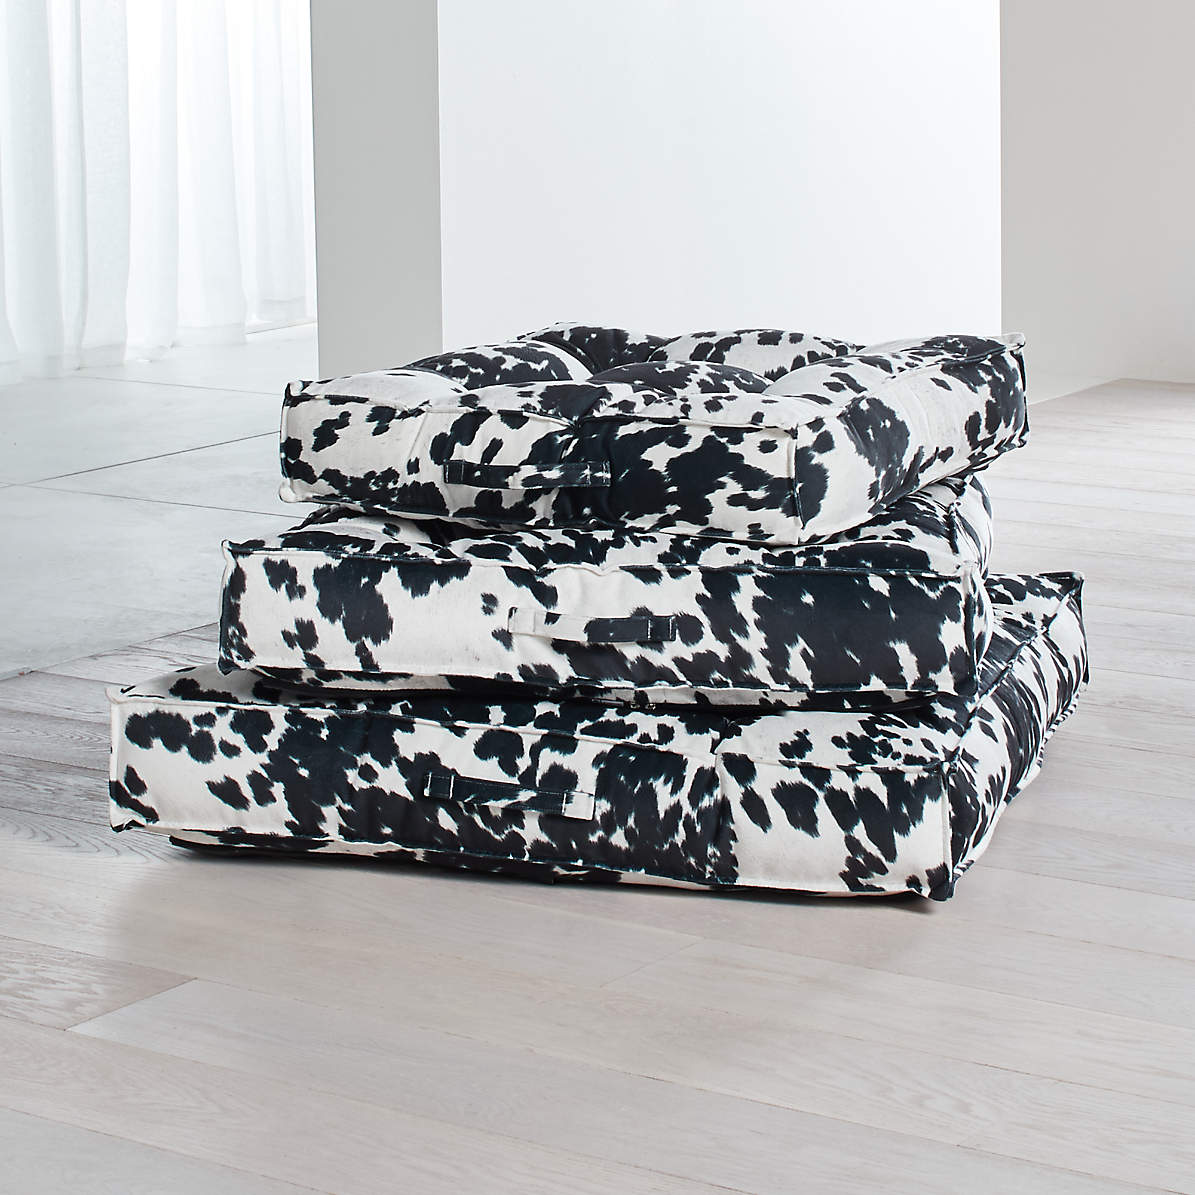 Picture of: Piazza Tufted Dog Beds Crate And Barrel